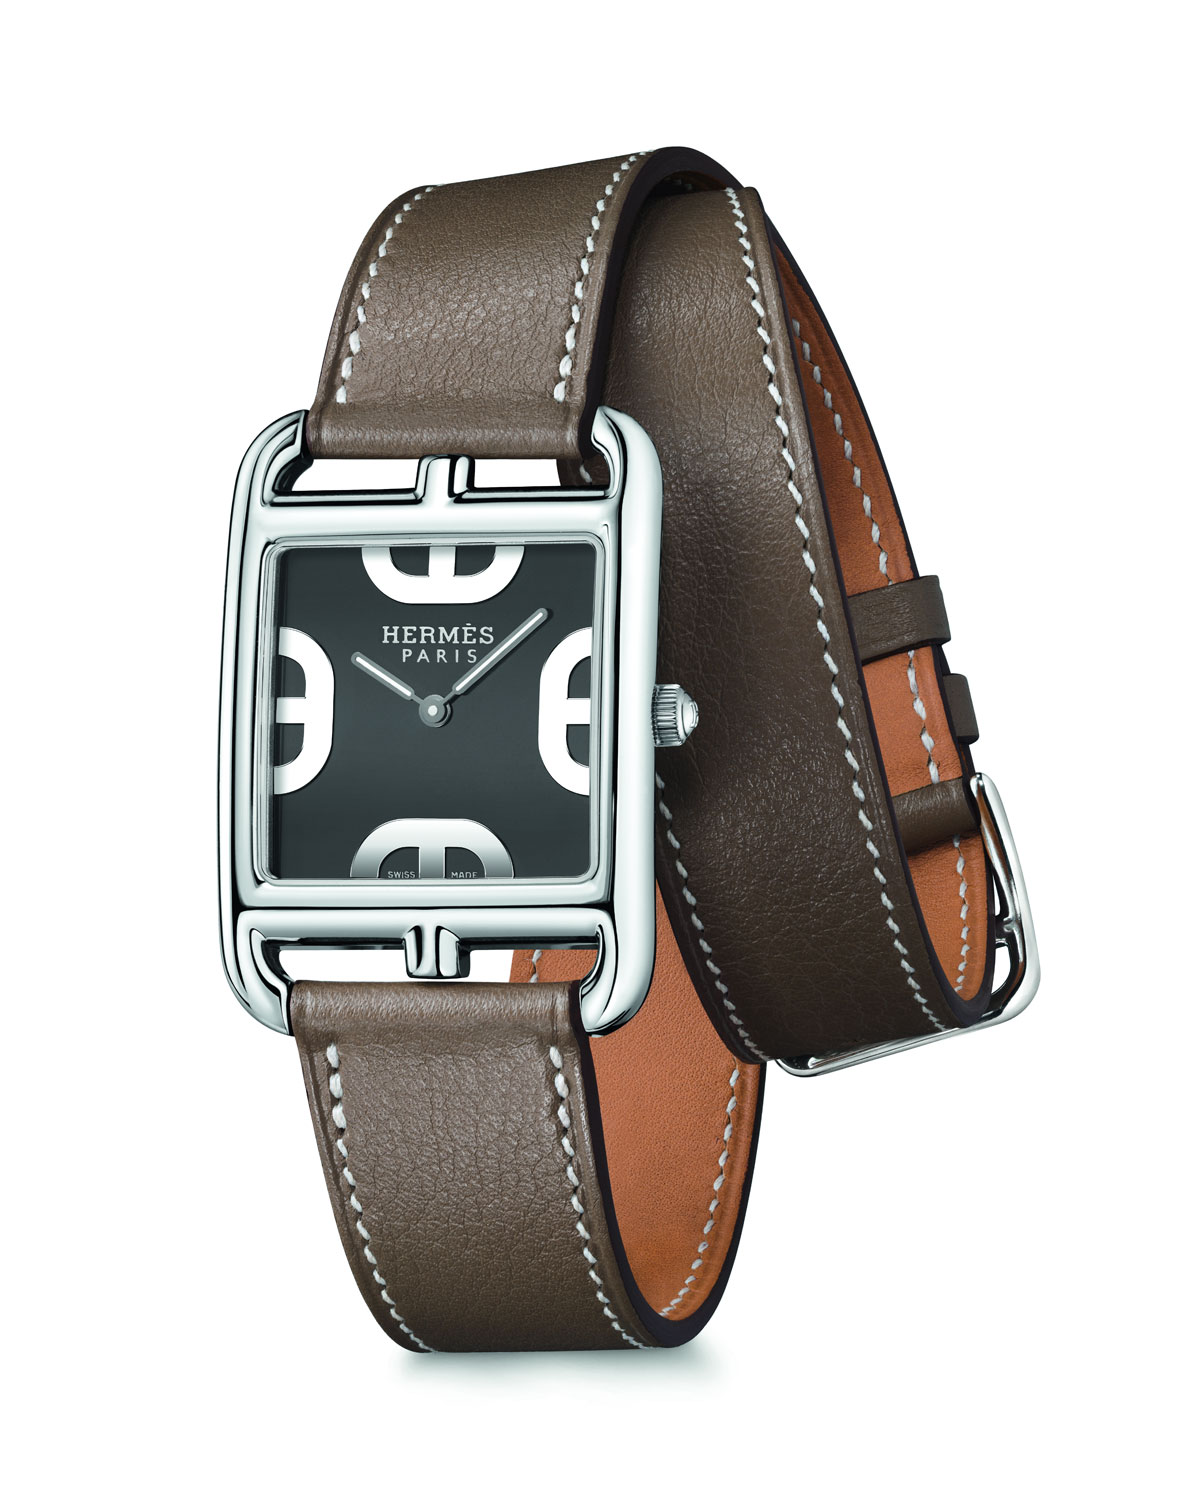 Hermès Cape Cod Watch, 29 x 29 mm